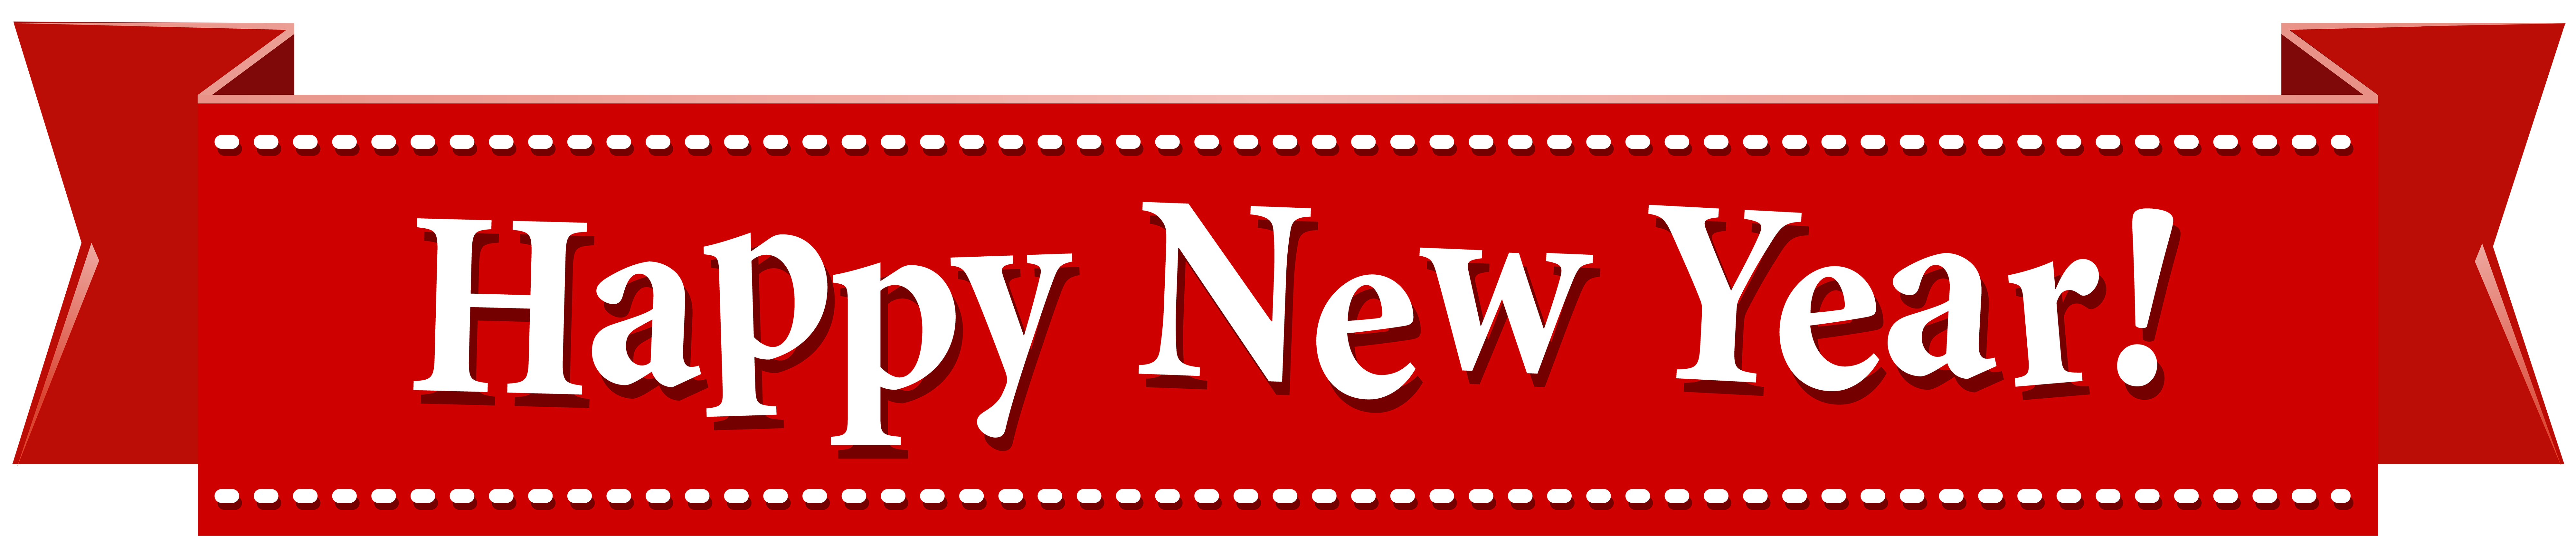 Happy new year banner png. Transparent clip art image